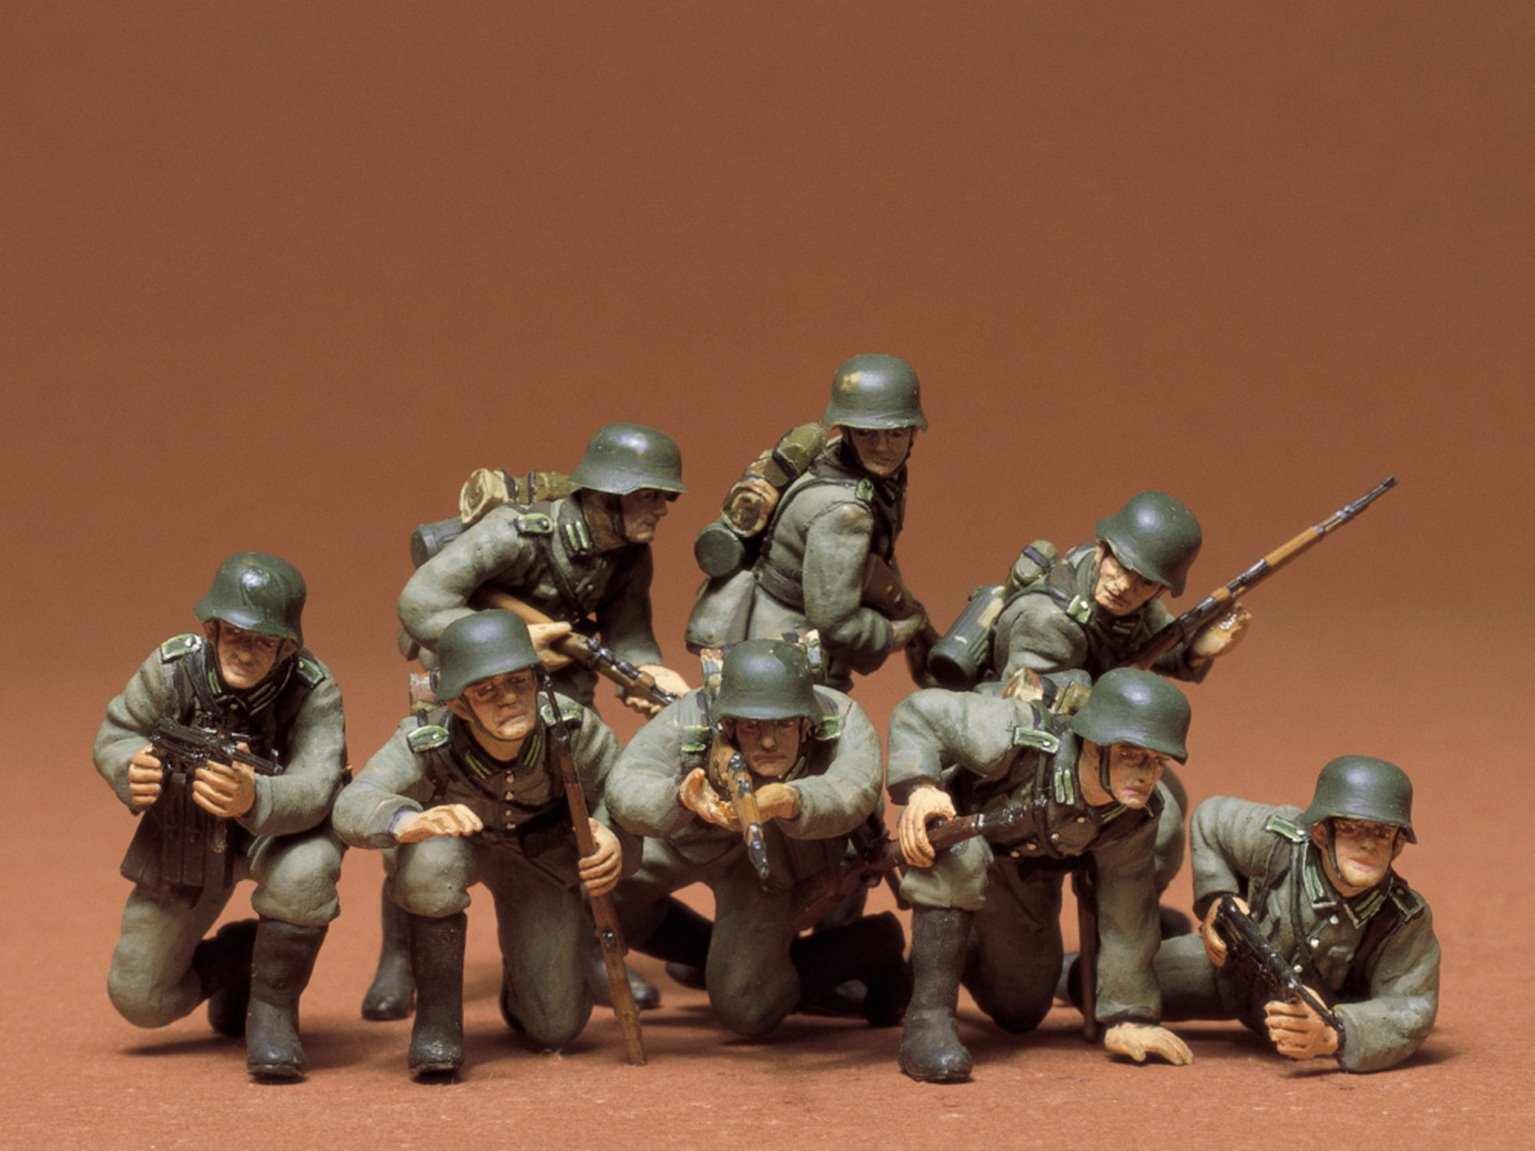 1/35 Military Miniature Series no.61 German Panzer Grenadiers